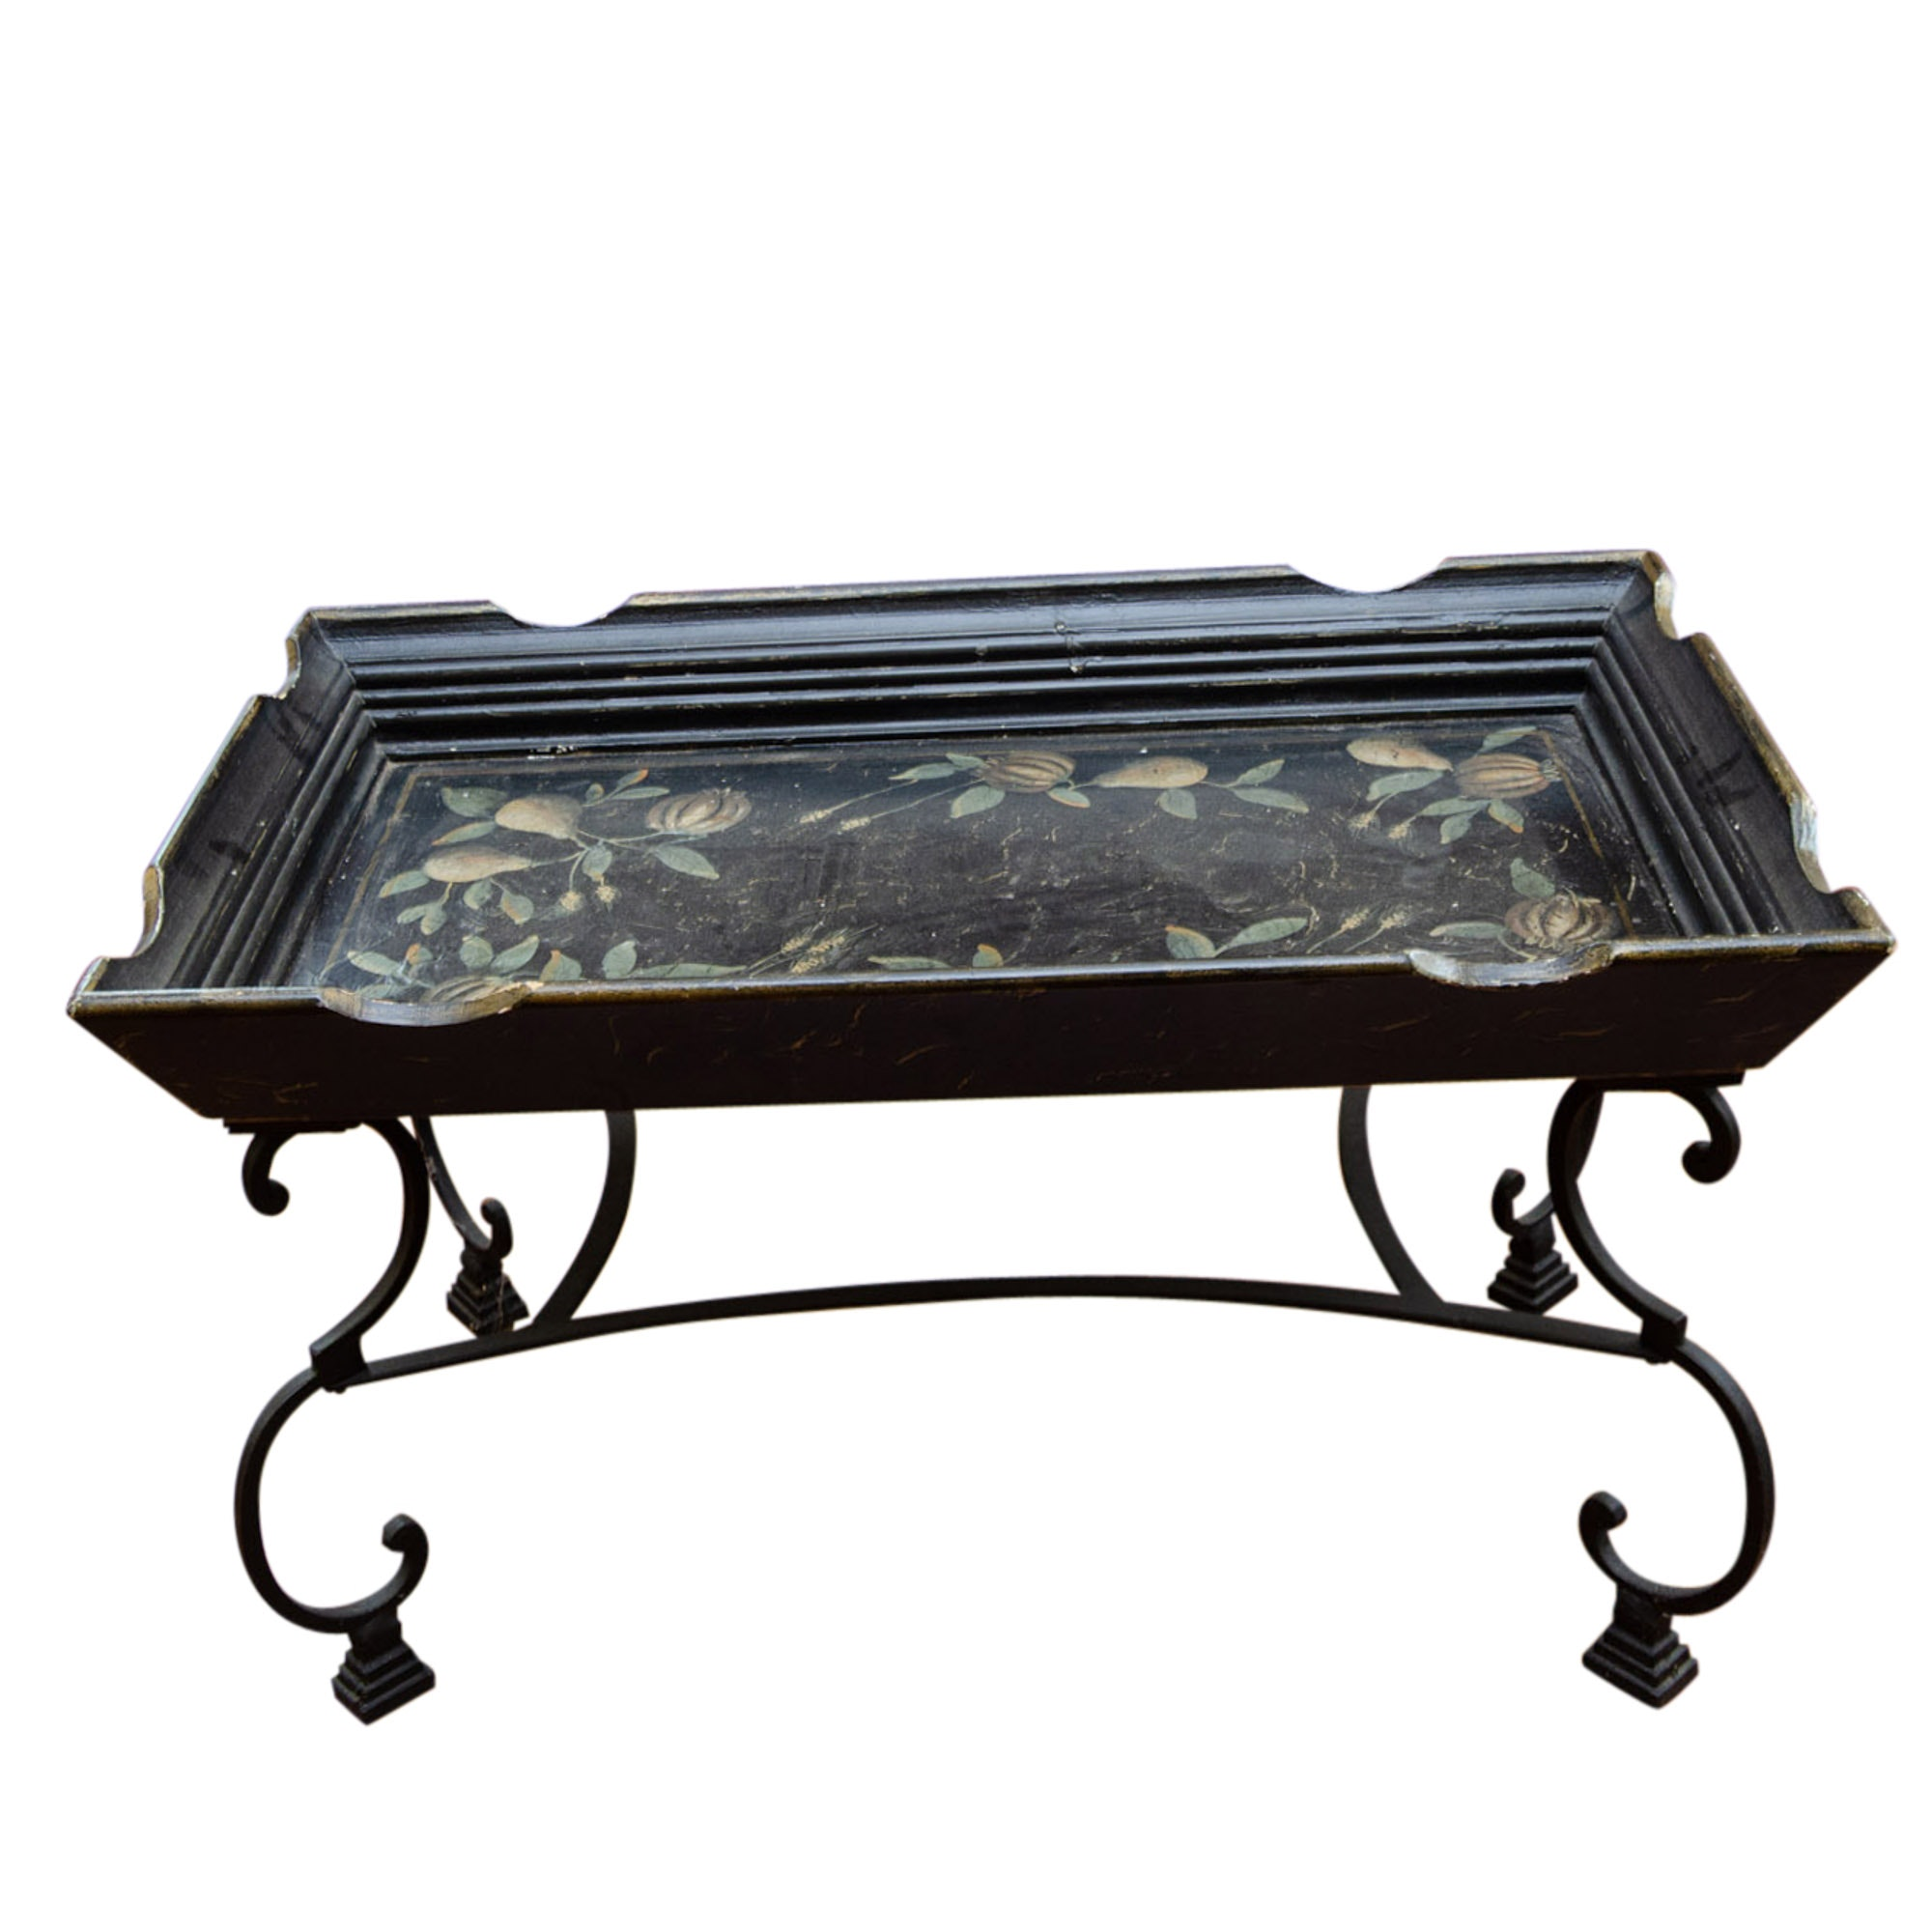 Stenciled Wood Tray Table on Wrought Iron Base